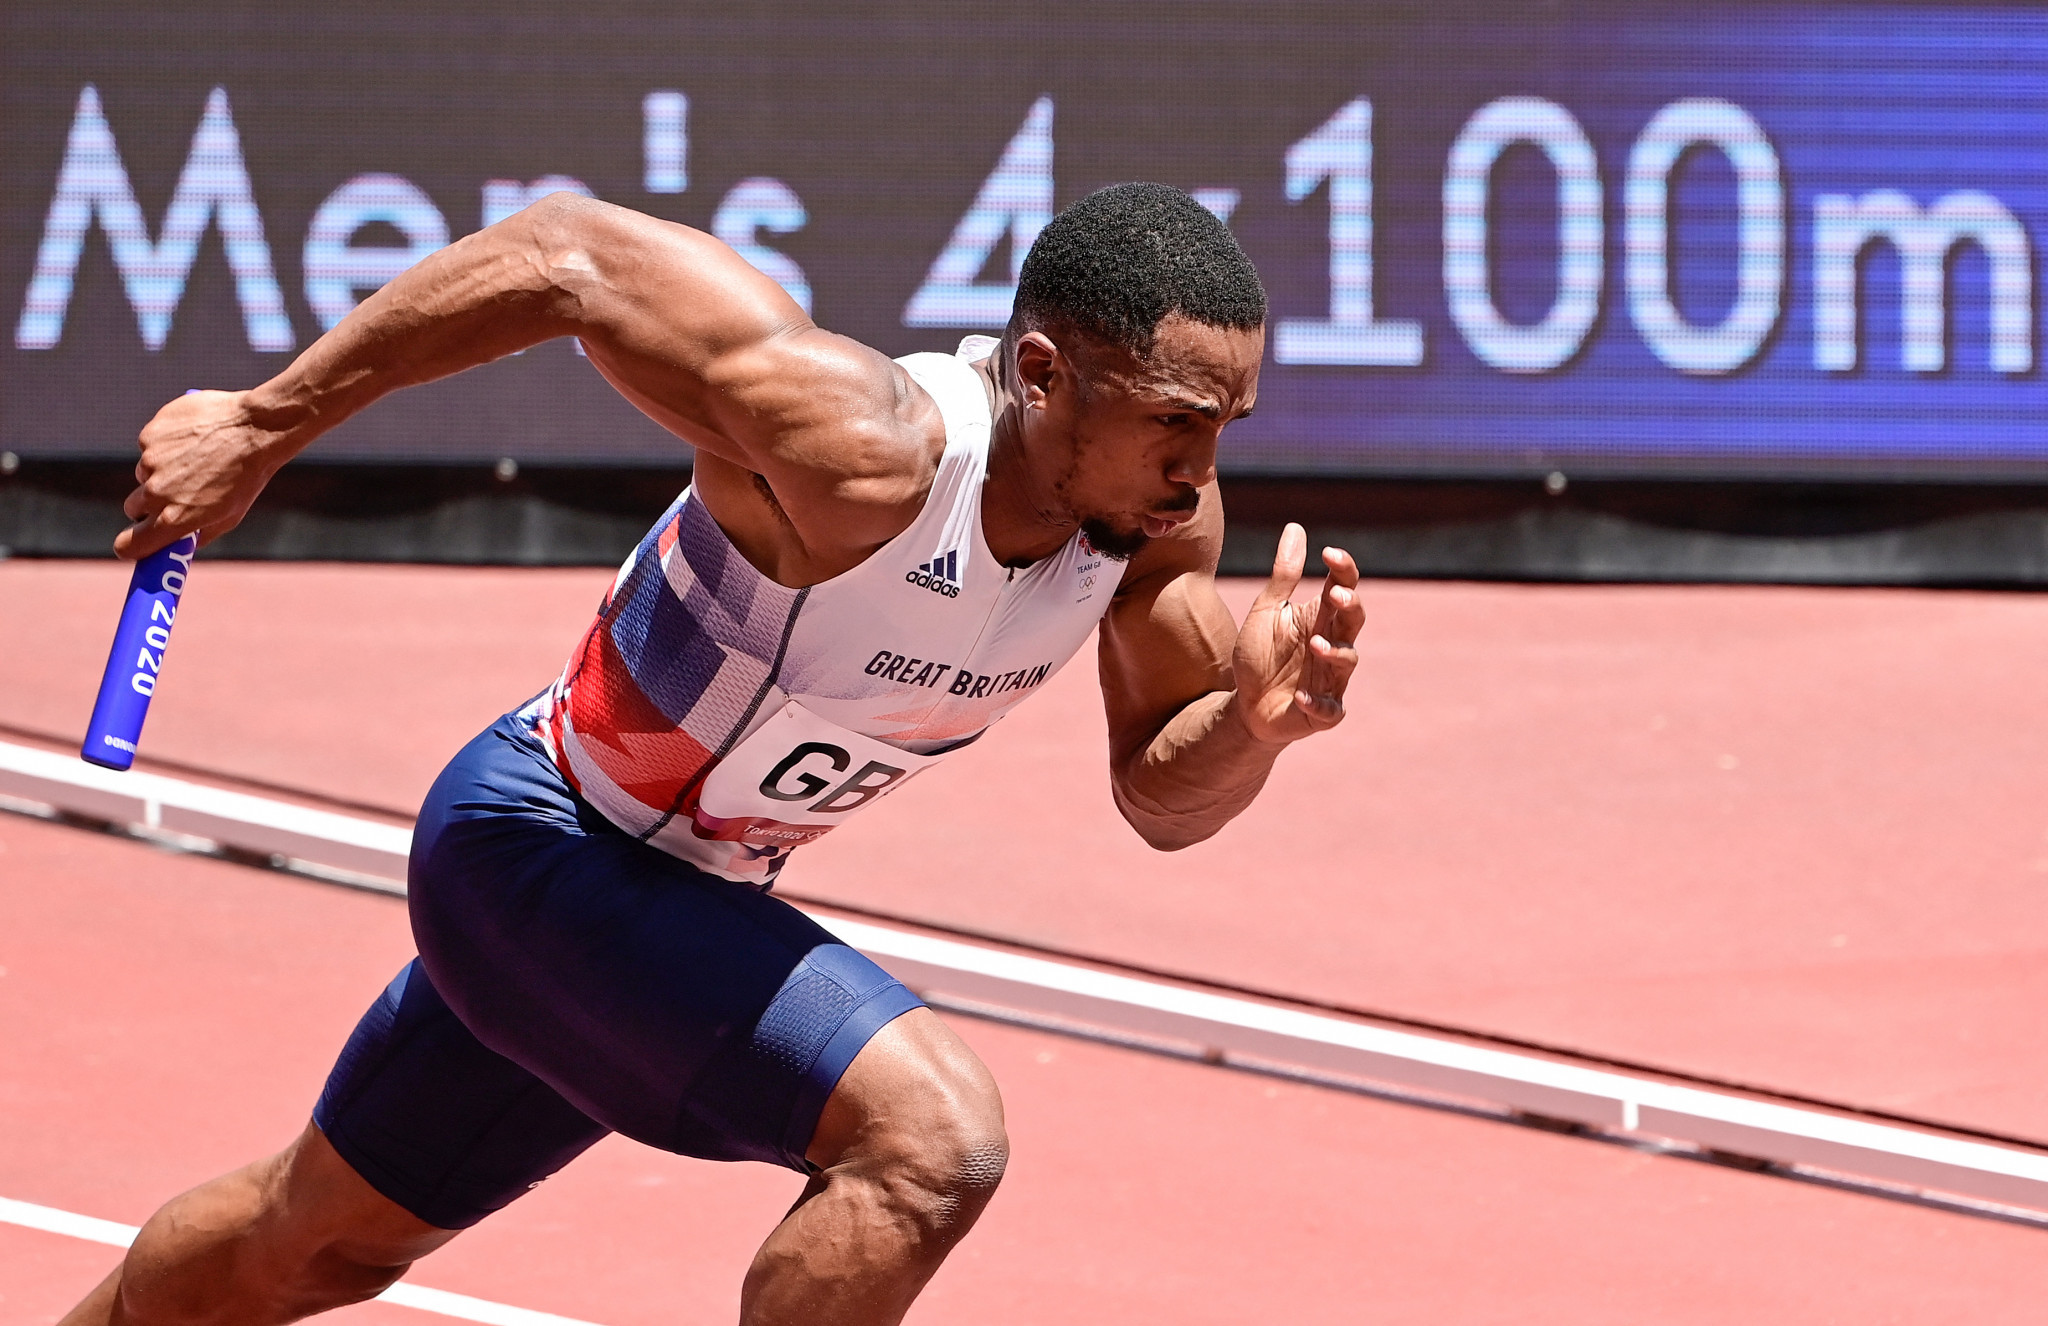 Britain set to lose Tokyo 2020 relay silver medal after Ujah positive test confirmed